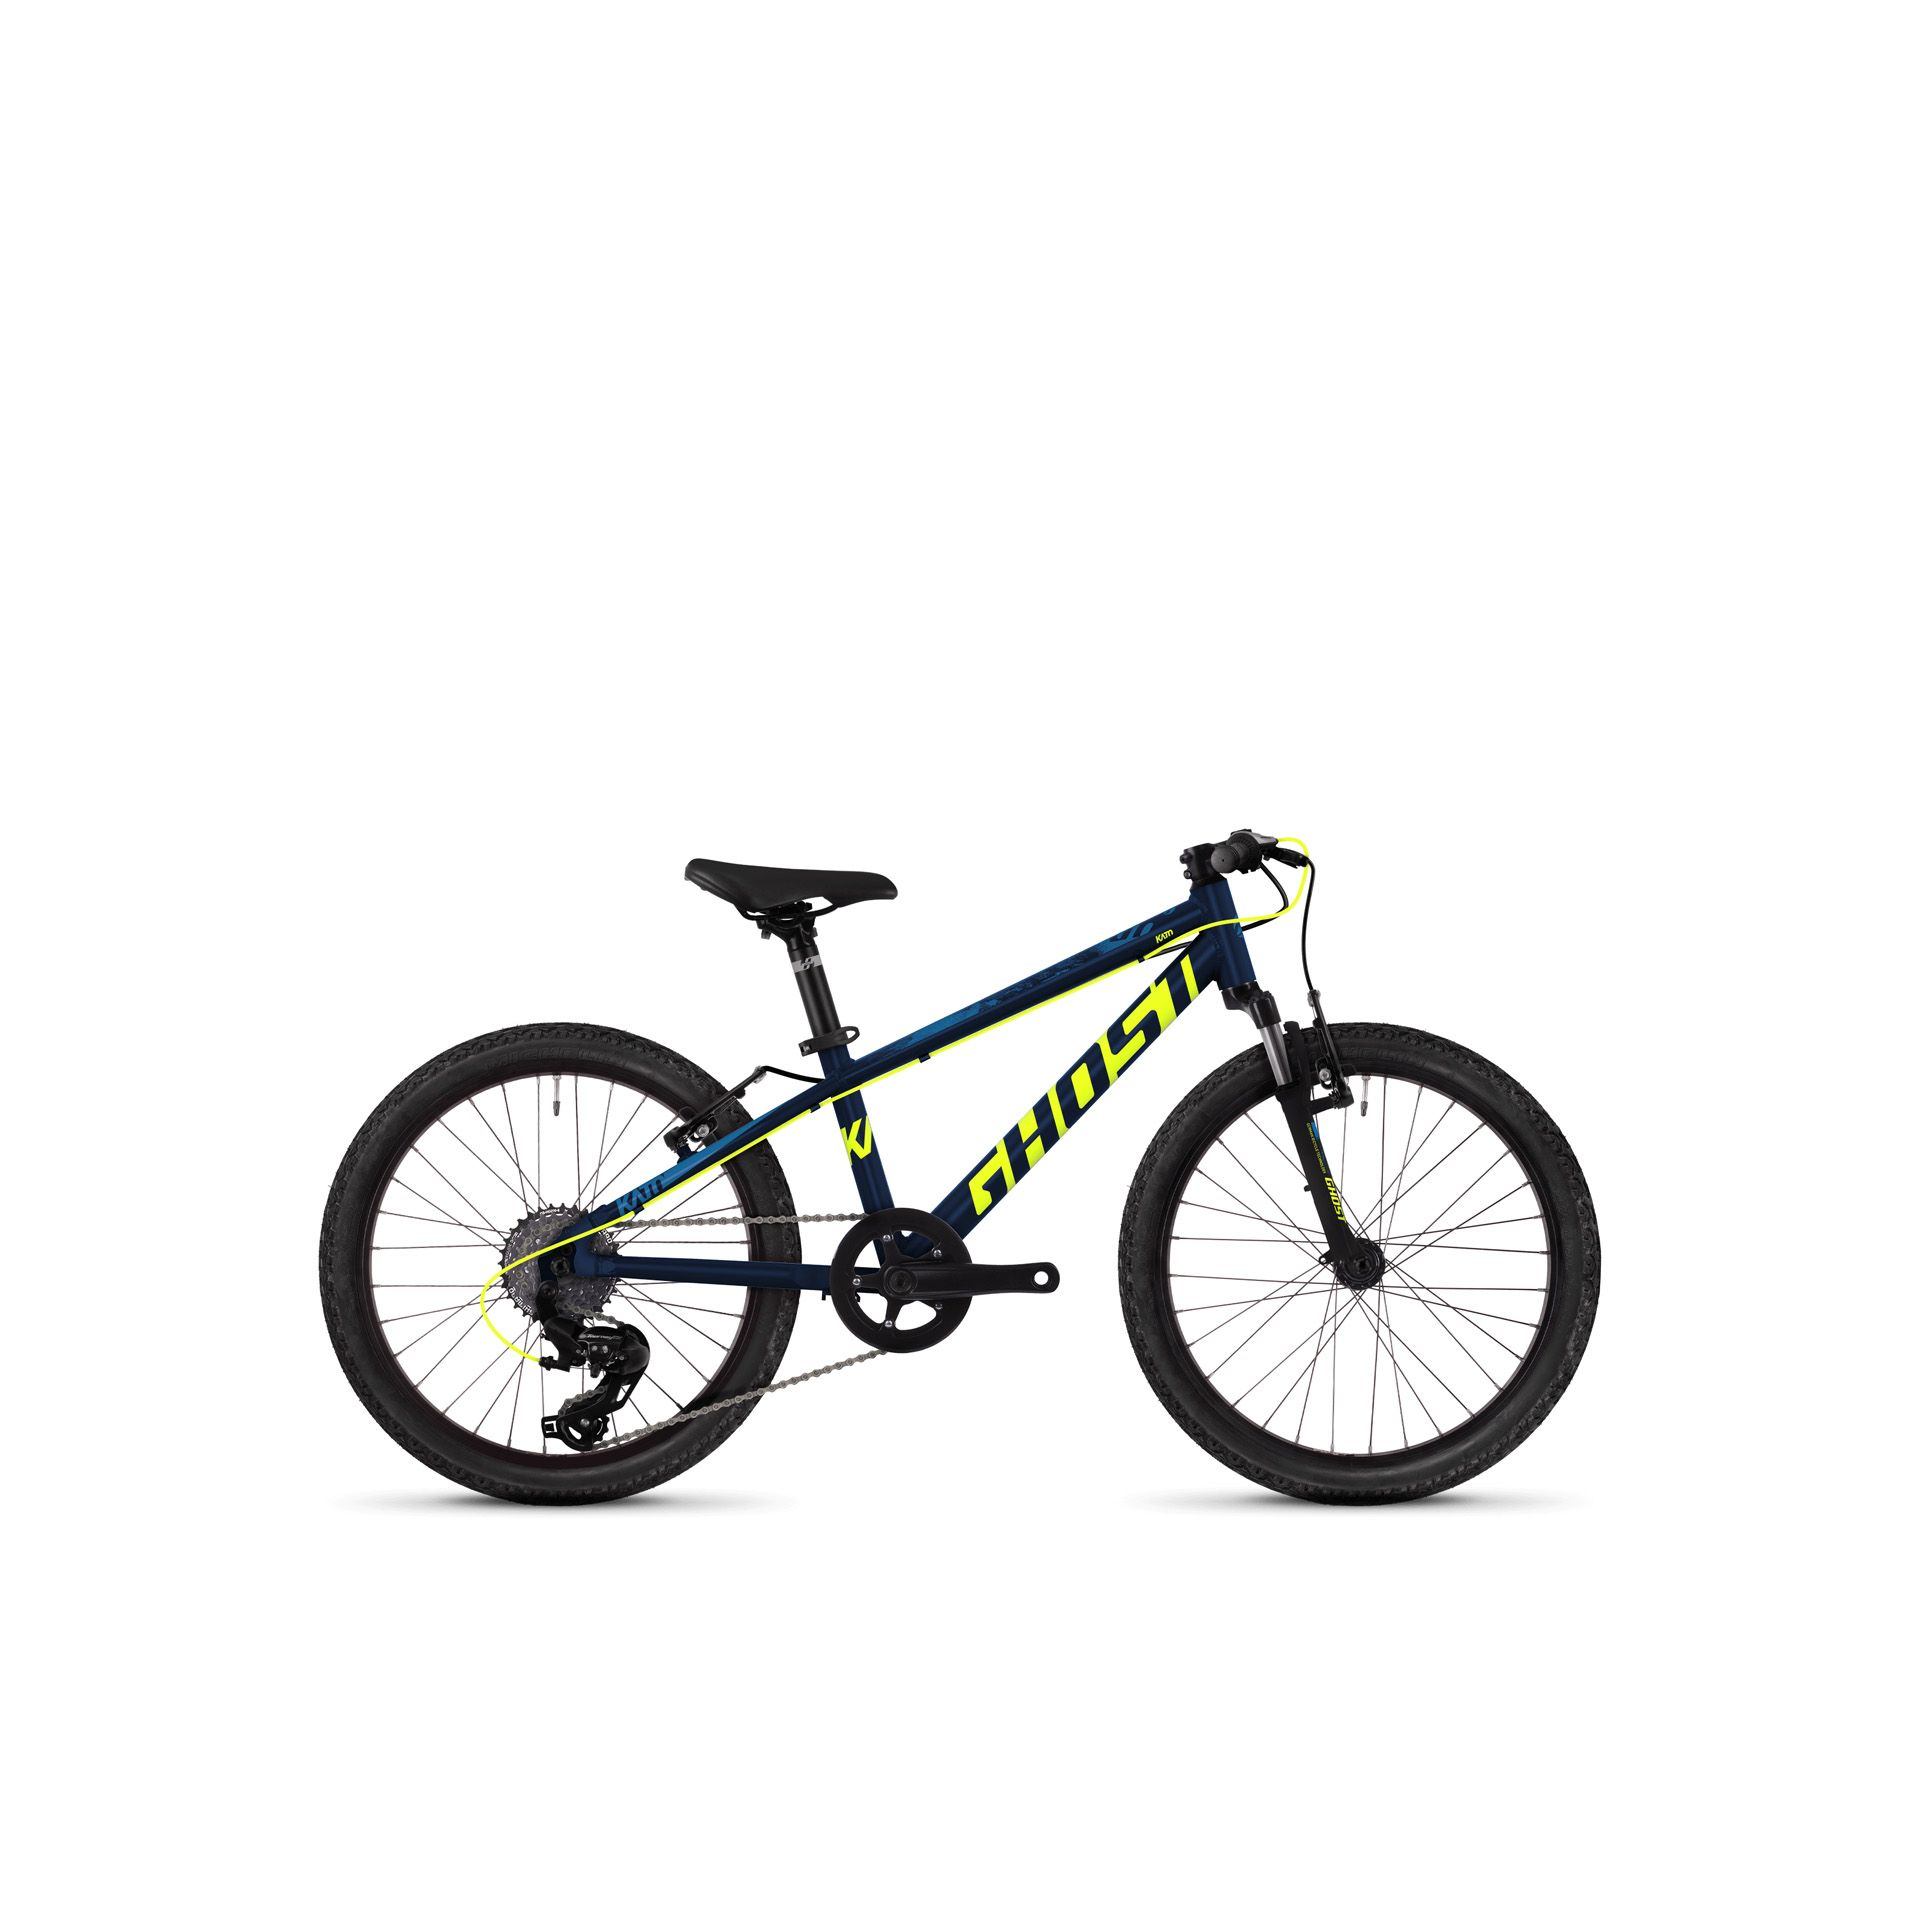 VTT semi-rigide Ghost Kato Kid 2.0 20 bleu/jaune